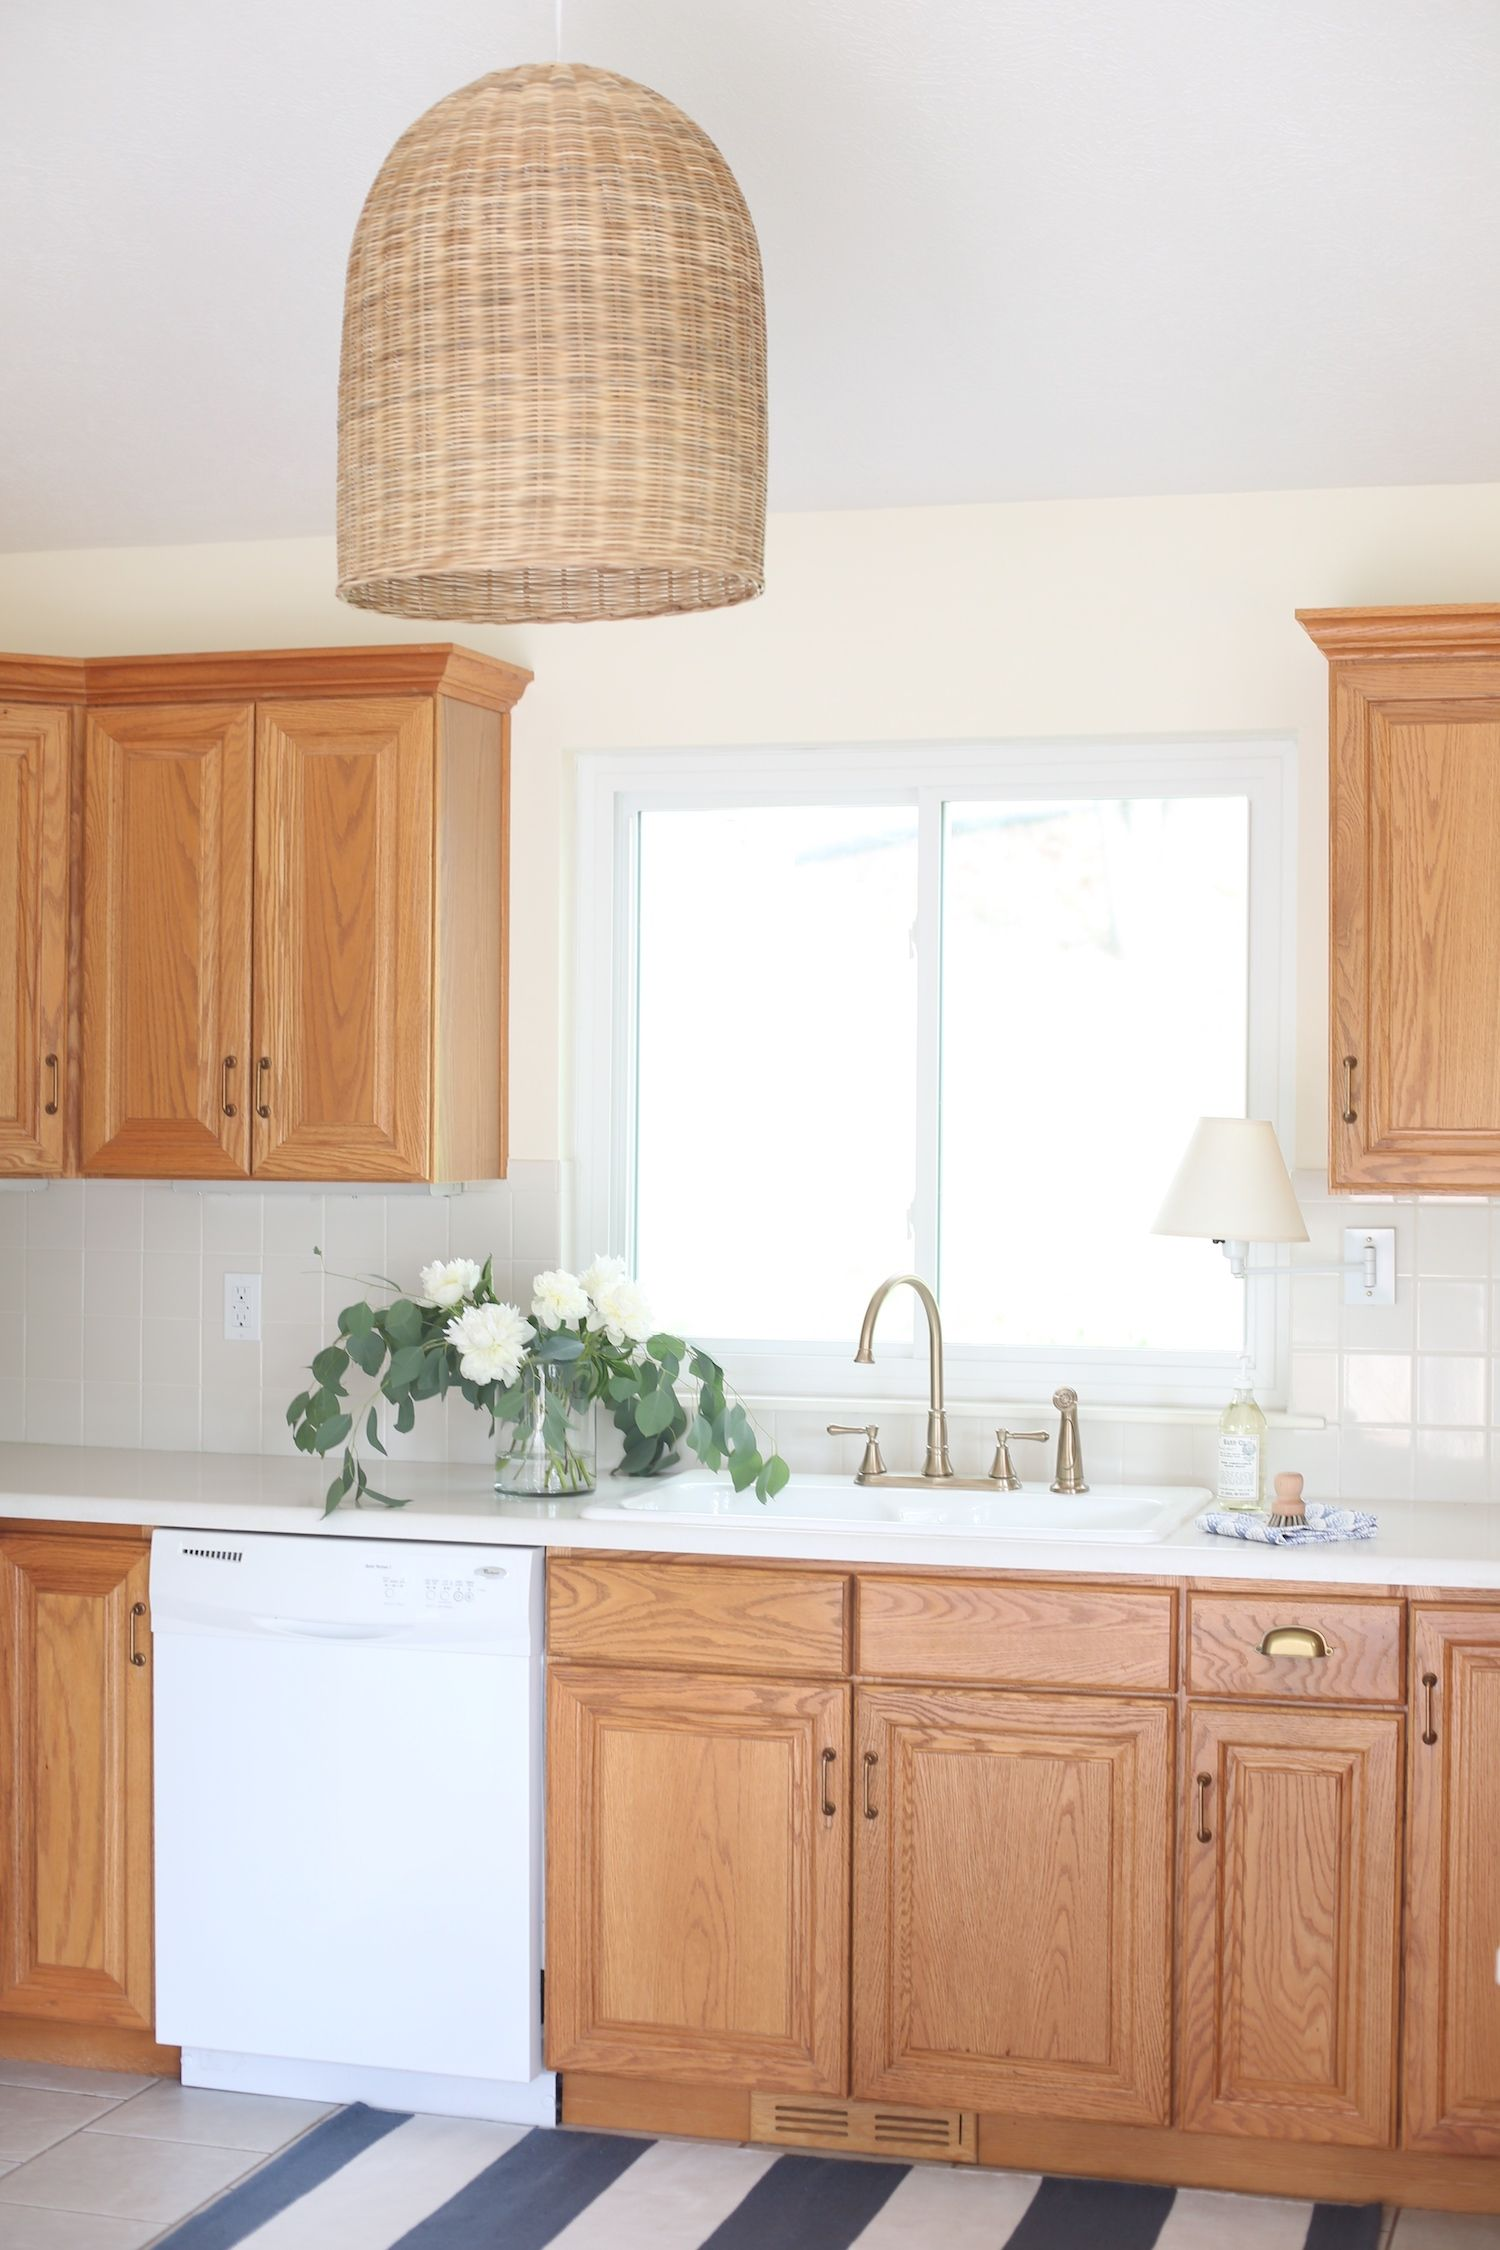 13 Ways To Makeover Dated Kitchen Cabinets Without Replacing Them Kitchen Redesign Home Decor Kitchen Replacing Kitchen Cabinets